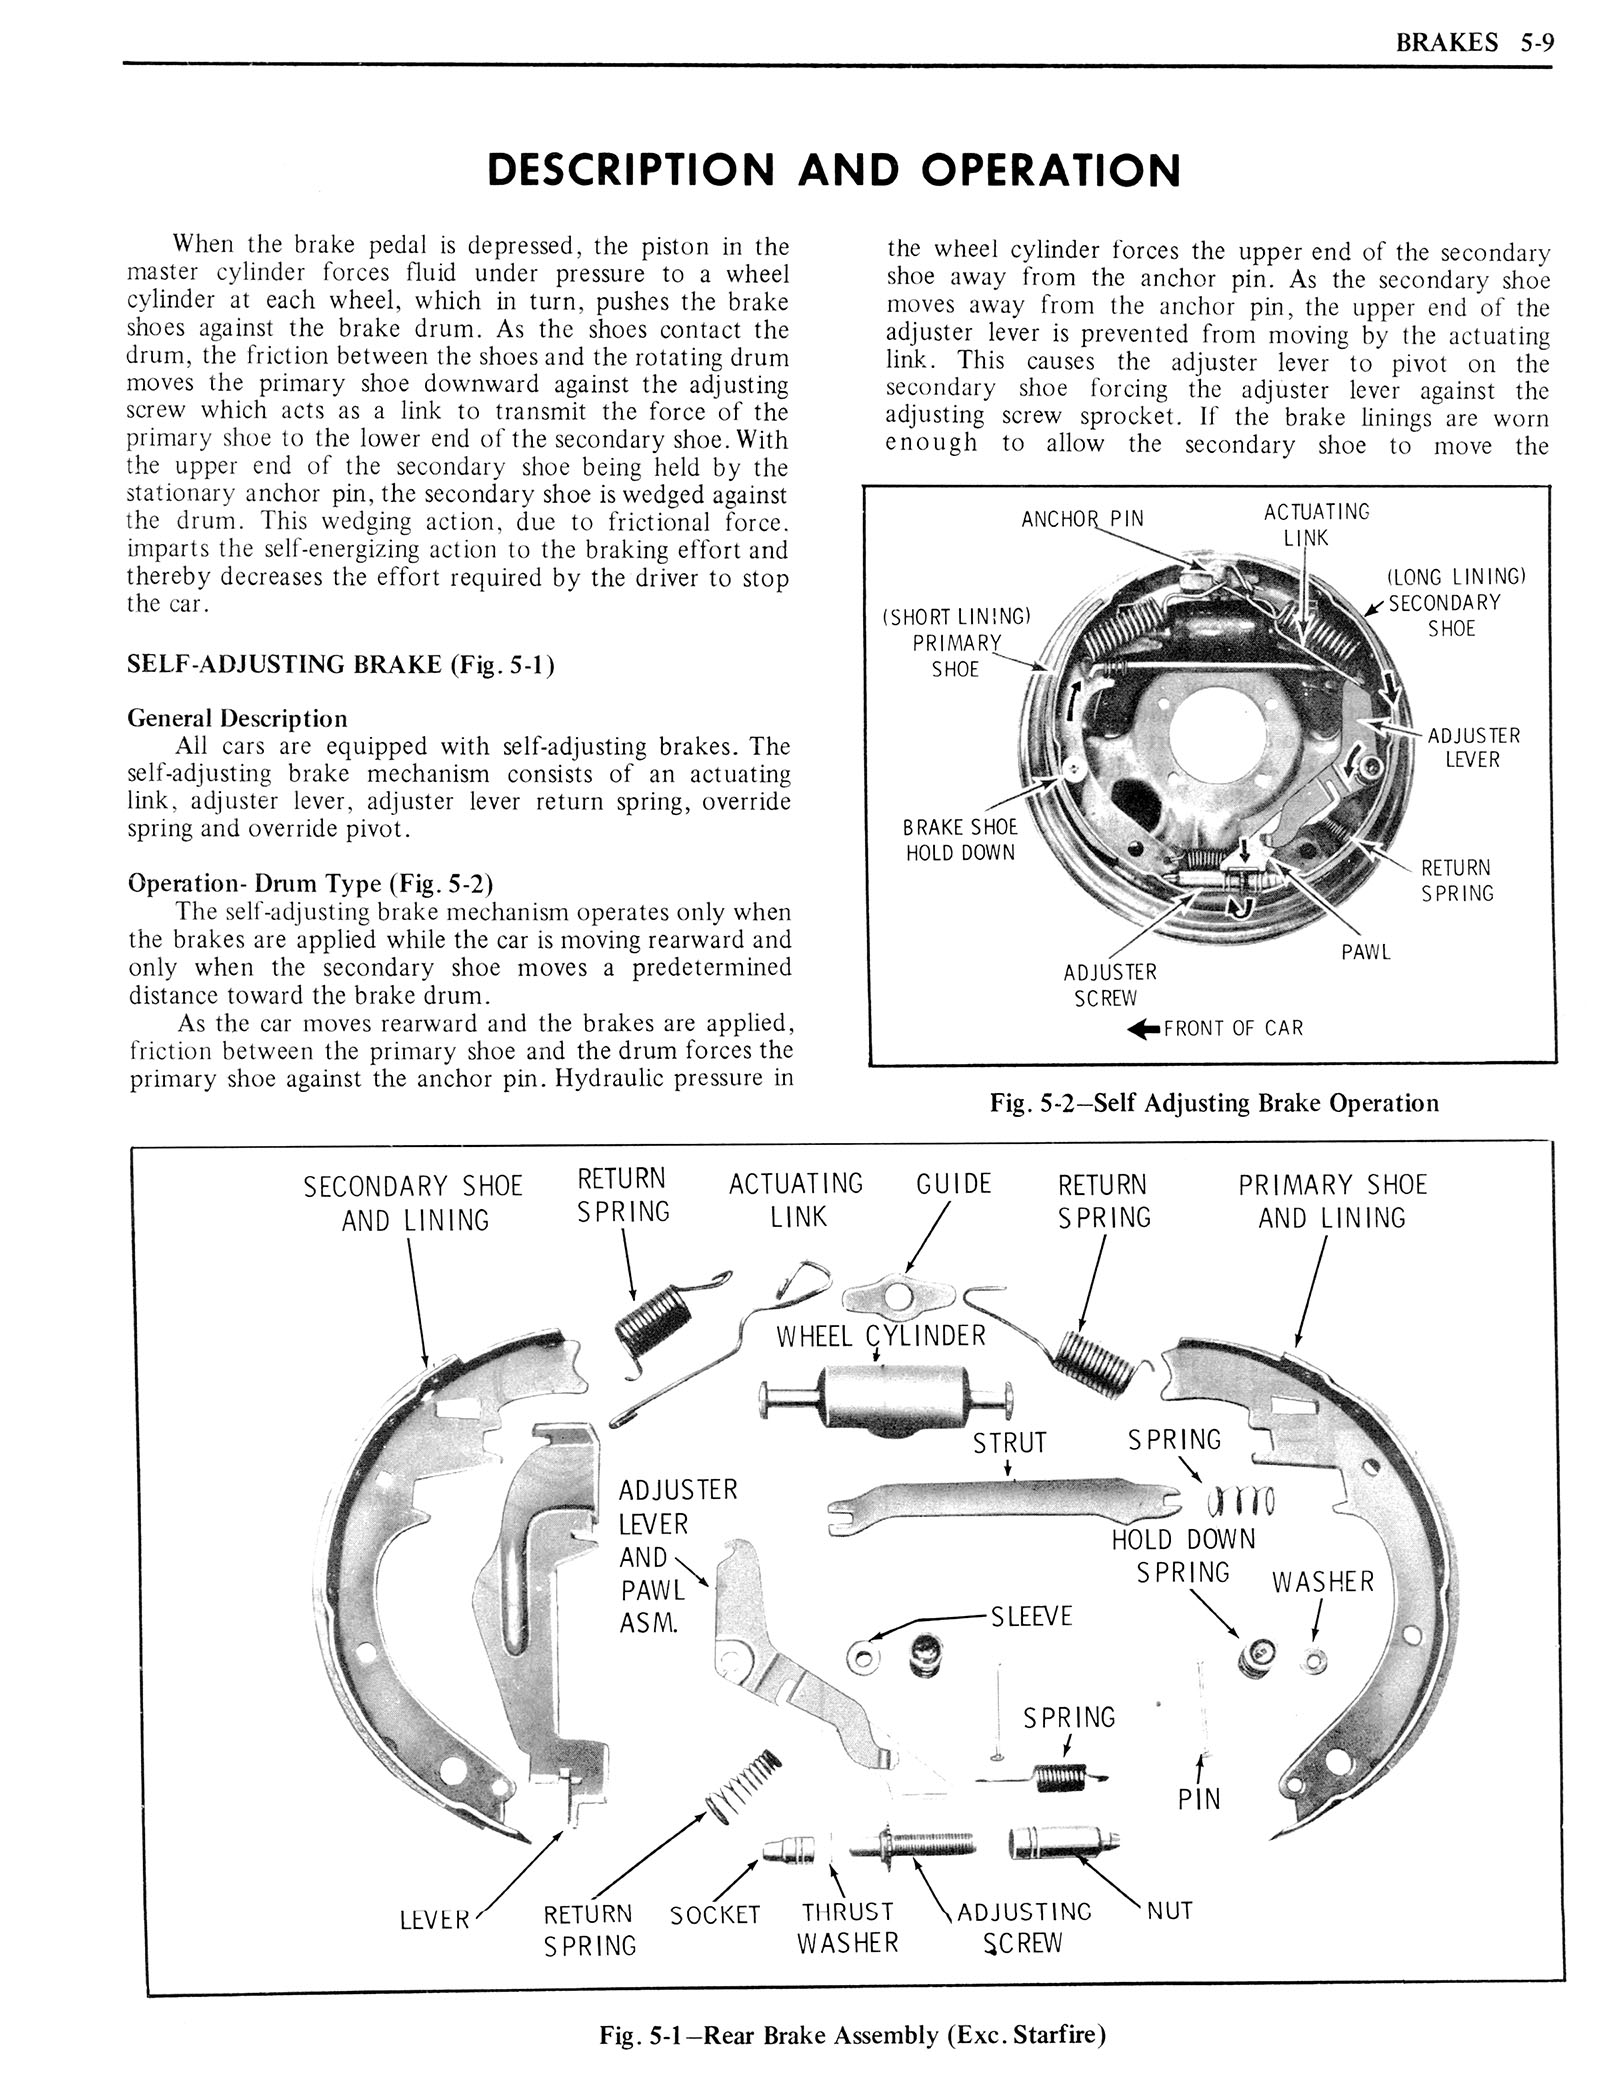 1976 Oldsmobile Service Manual page 343 of 1390